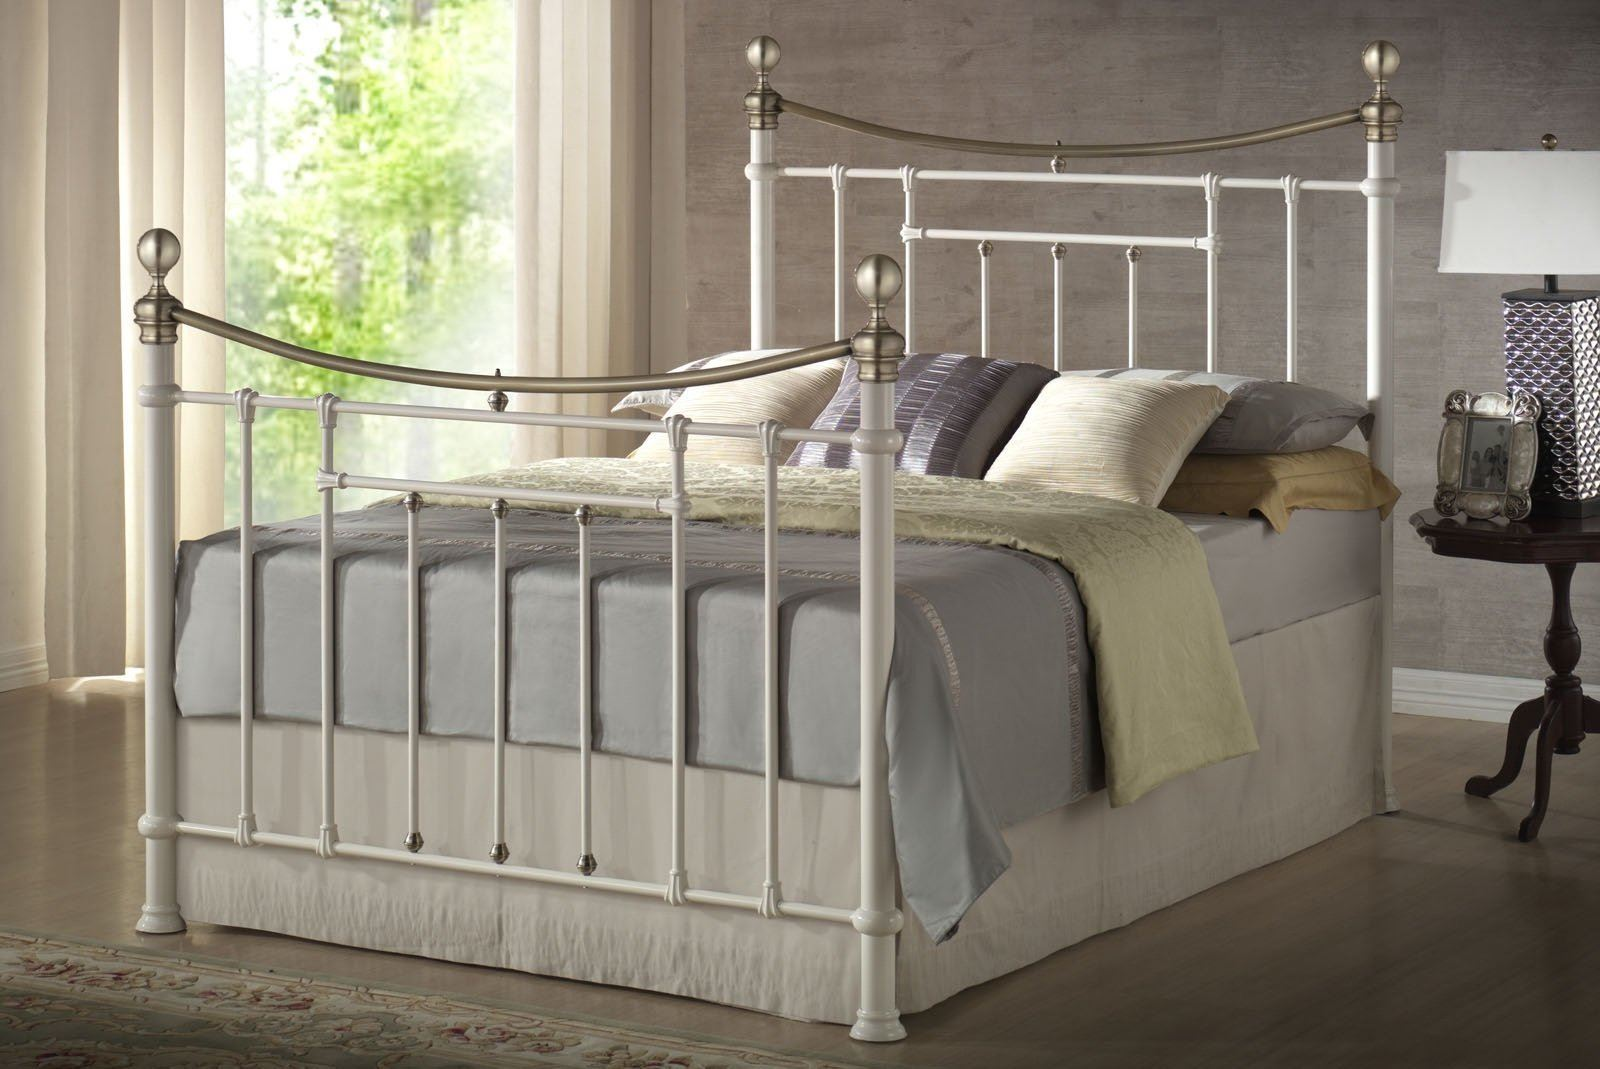 Bronte Antique Brass Cream Double 4FT6 135cm Metal Bed Frame